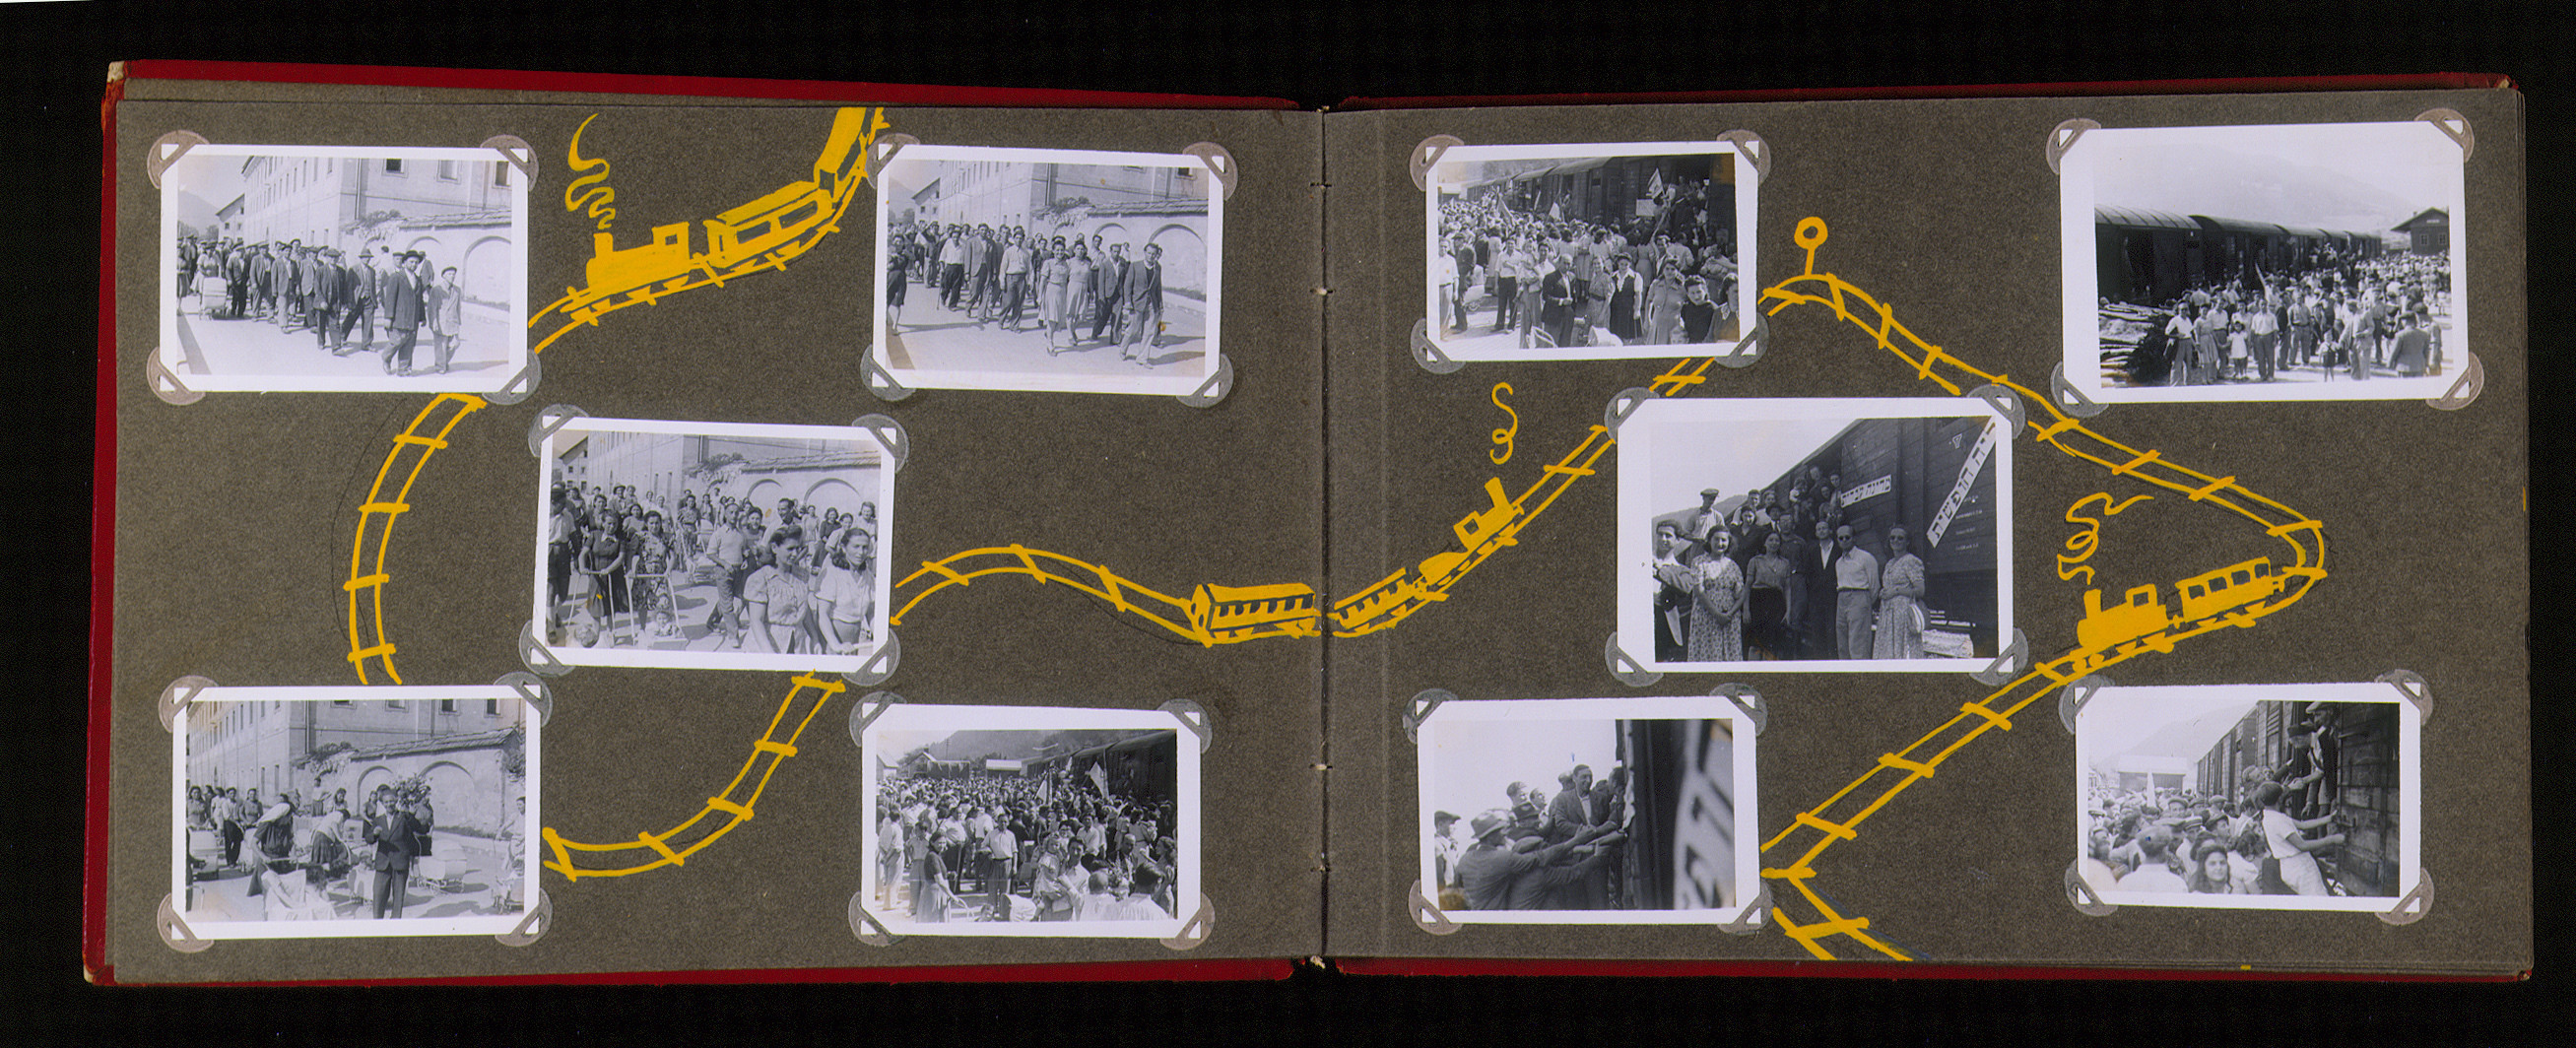 "Family album that belonged to Moritz Friedler, bearing the title ""Motoring/Jewish DP camp/St. Marein [Sankt Marien]/School.""   In 1946 and 1947, Moritz Friedler served as a social worker with the Jewish Committee for Relief Abroad at the Sankt Marien DP camp in the British zone of Austria. Friedler subsequently became the JDC's Area Director in Linz, Austria.  The photo album documents Jewish DP life in both places."